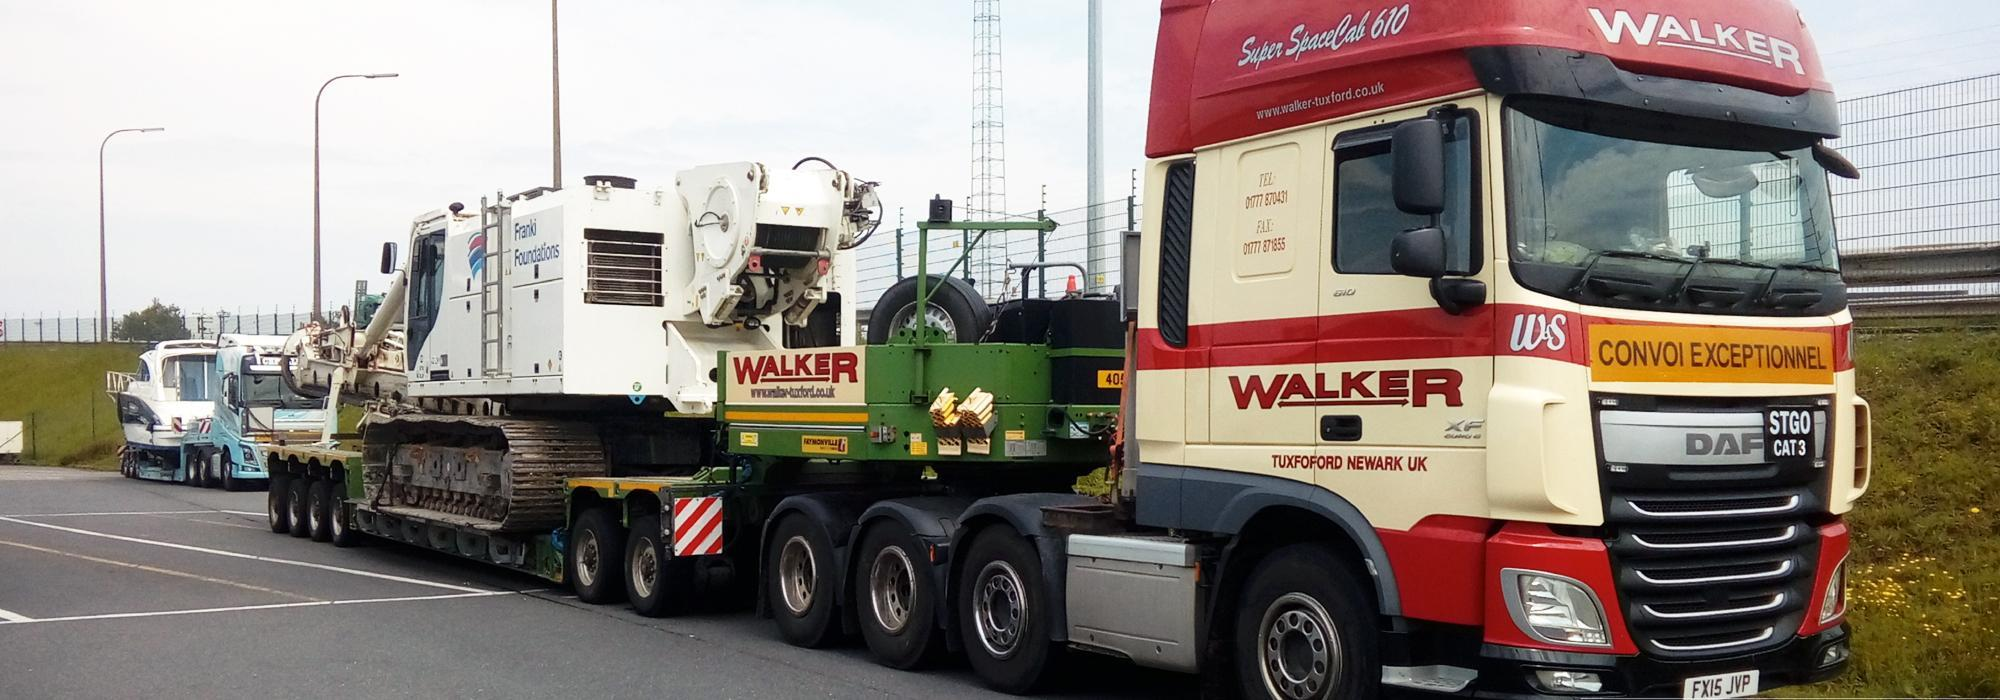 Uk Amp European Haulage Crane Hire Machinery Removals